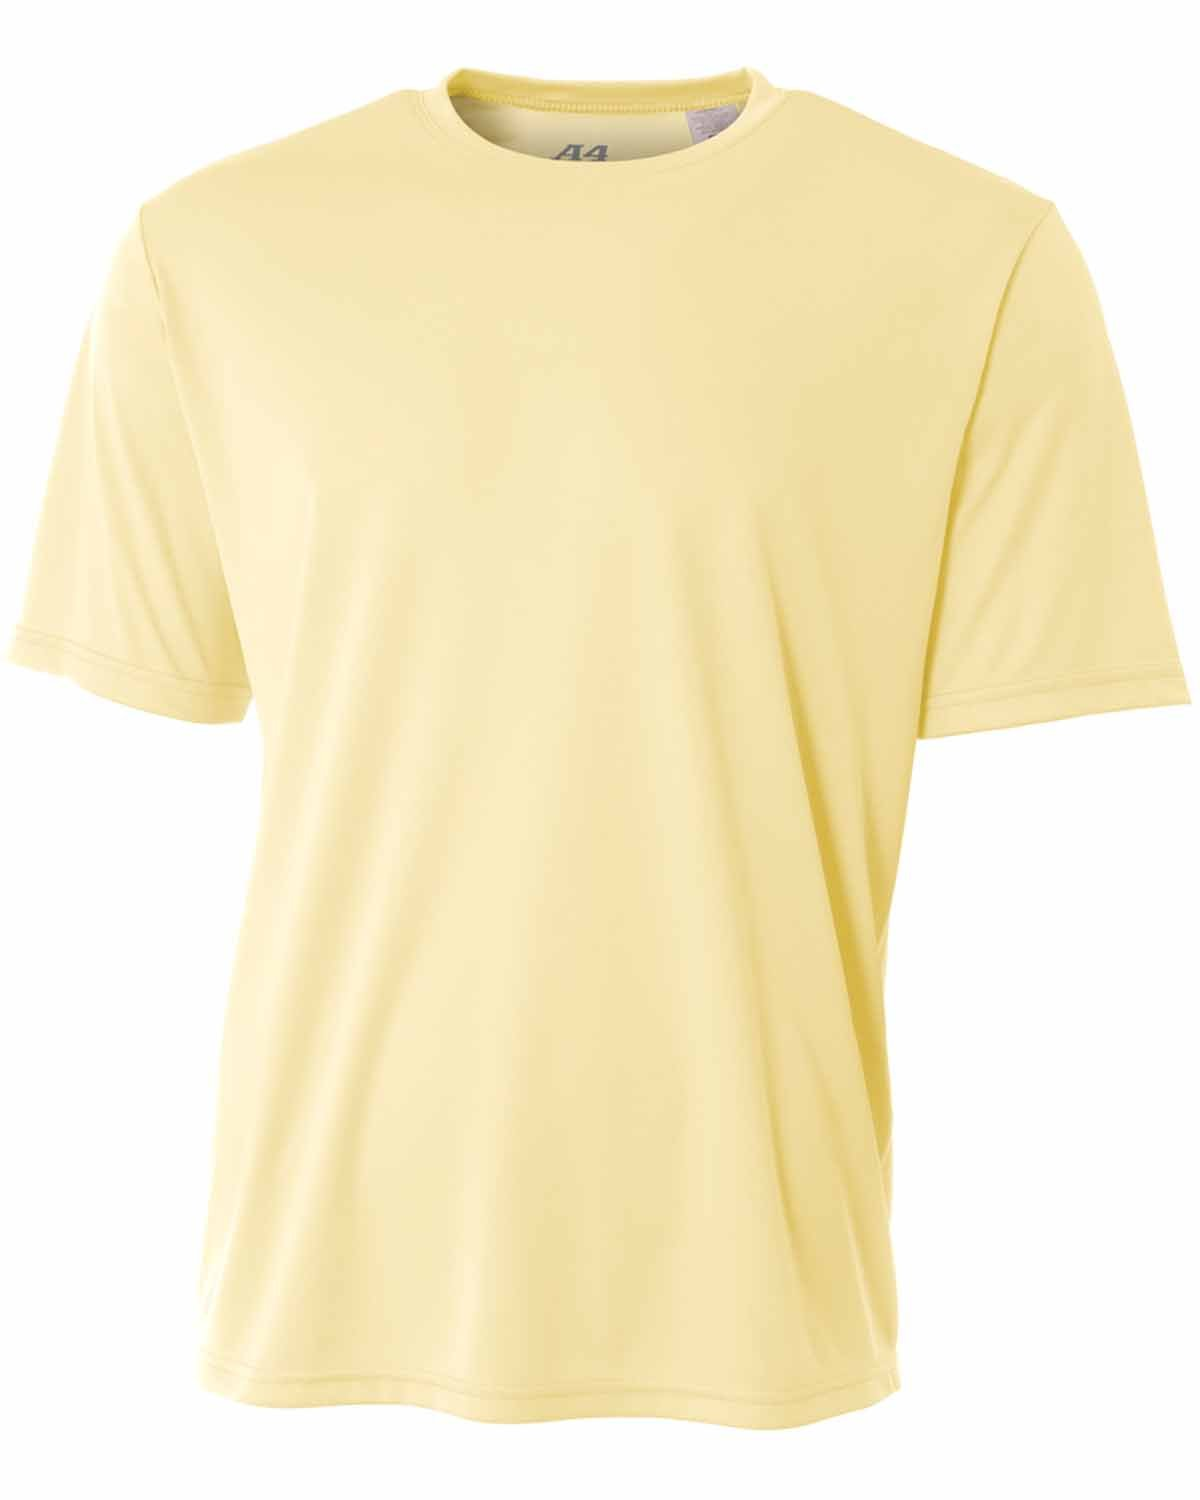 A4 Youth Cooling Performance T-Shirt LIGHT YELLOW